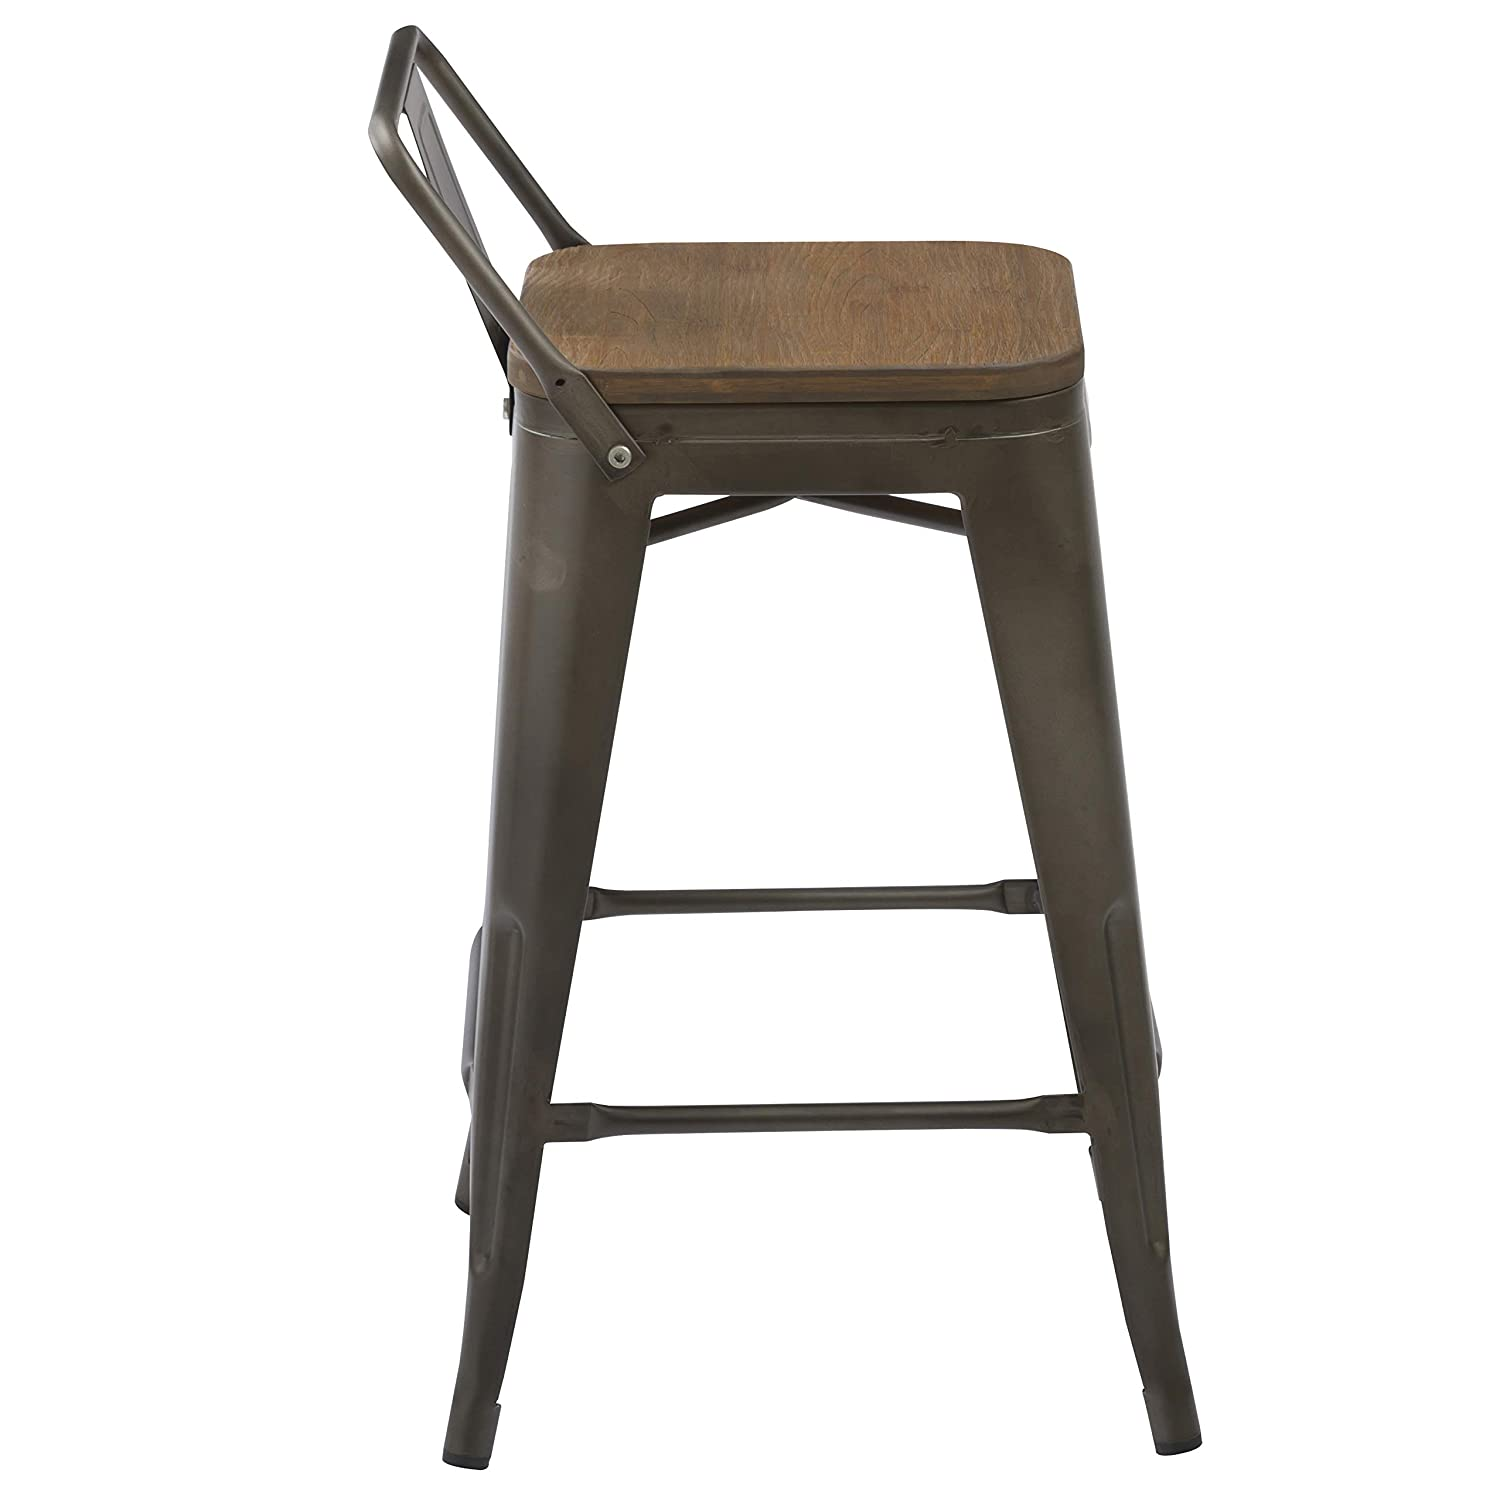 BTExpert Low Back Chair Industrial 24 Rustic Metal Wood Indoor Outdoor Counter Height Bar Stool Set of 4, 24 inch, Antique Bronze